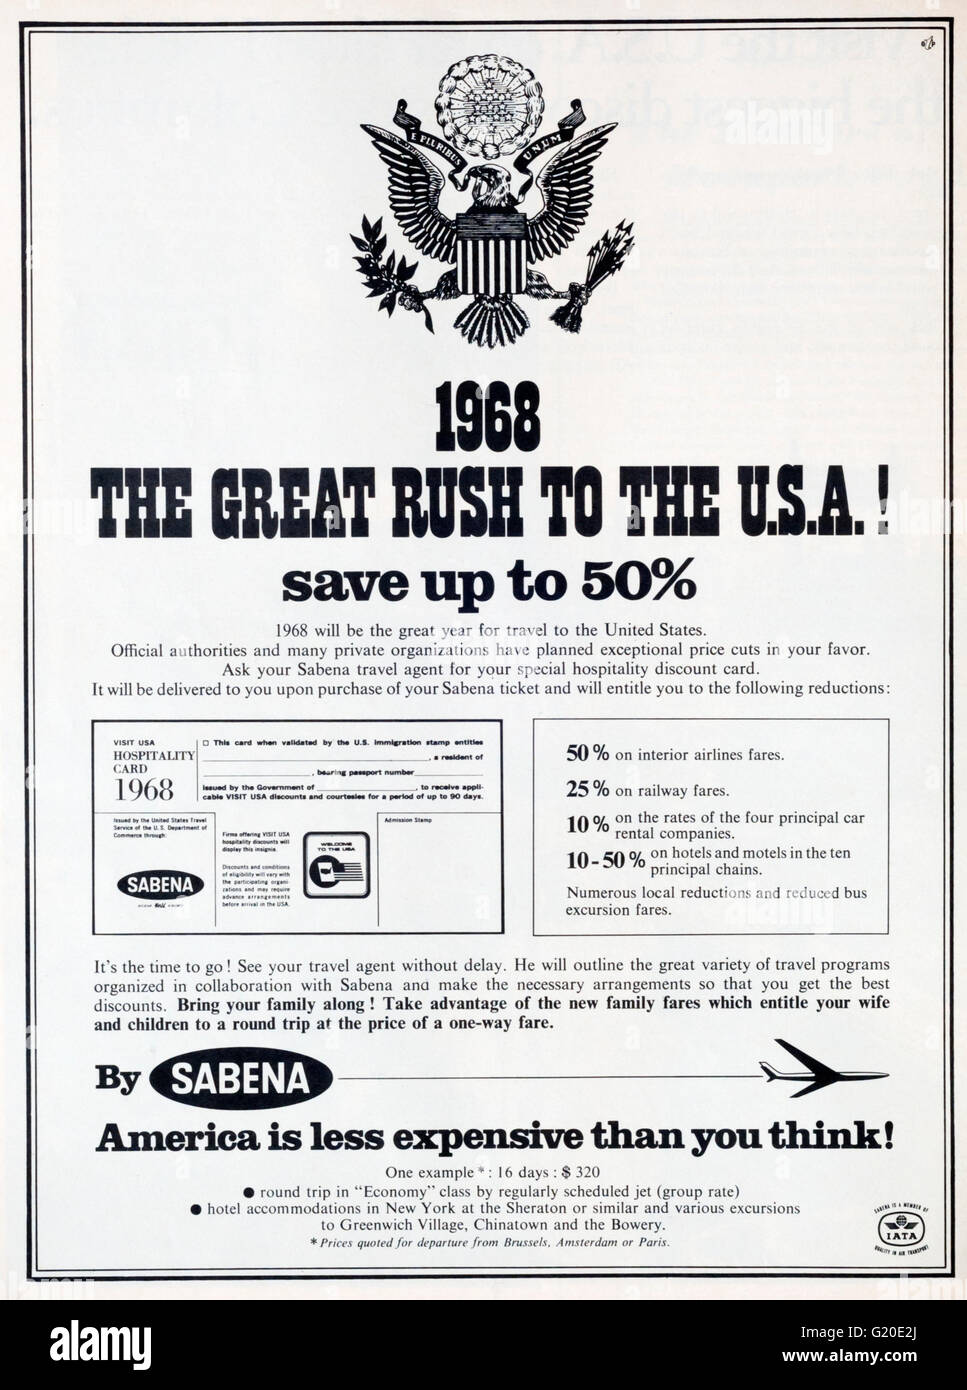 1960s magazine advertisement advertising American holidays in the USA by Sabena Airlines. Stock Photo